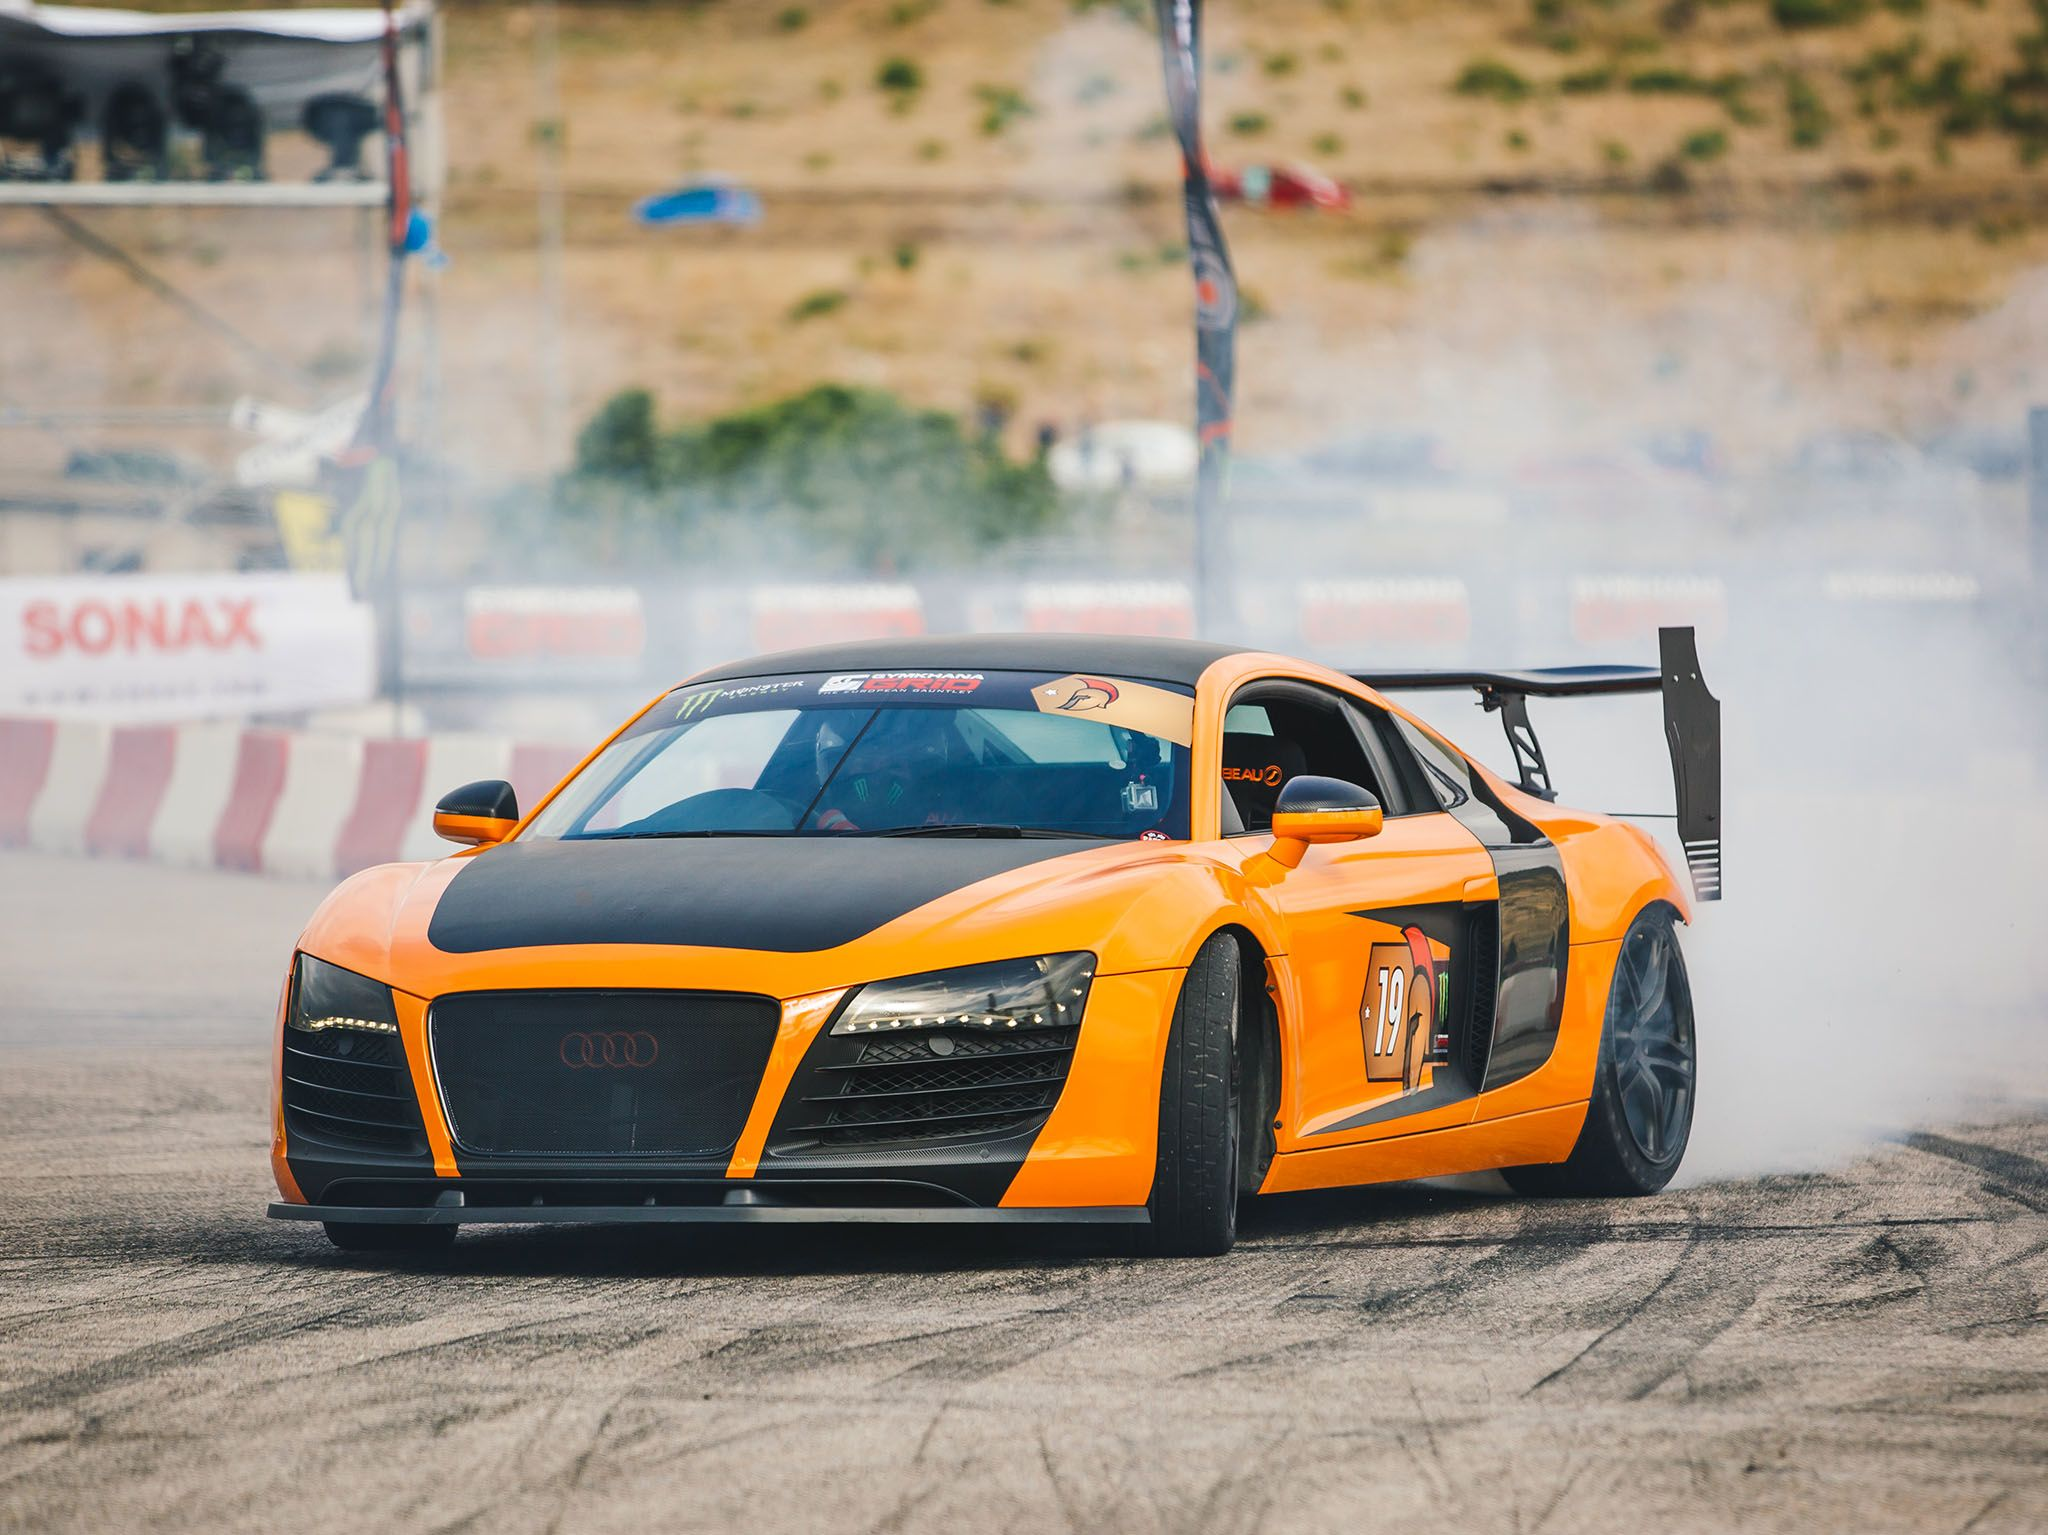 Marathonas, Greece: R8 on the track. This image is from Supercar Megabuild. [Photo of the day - May 2017]